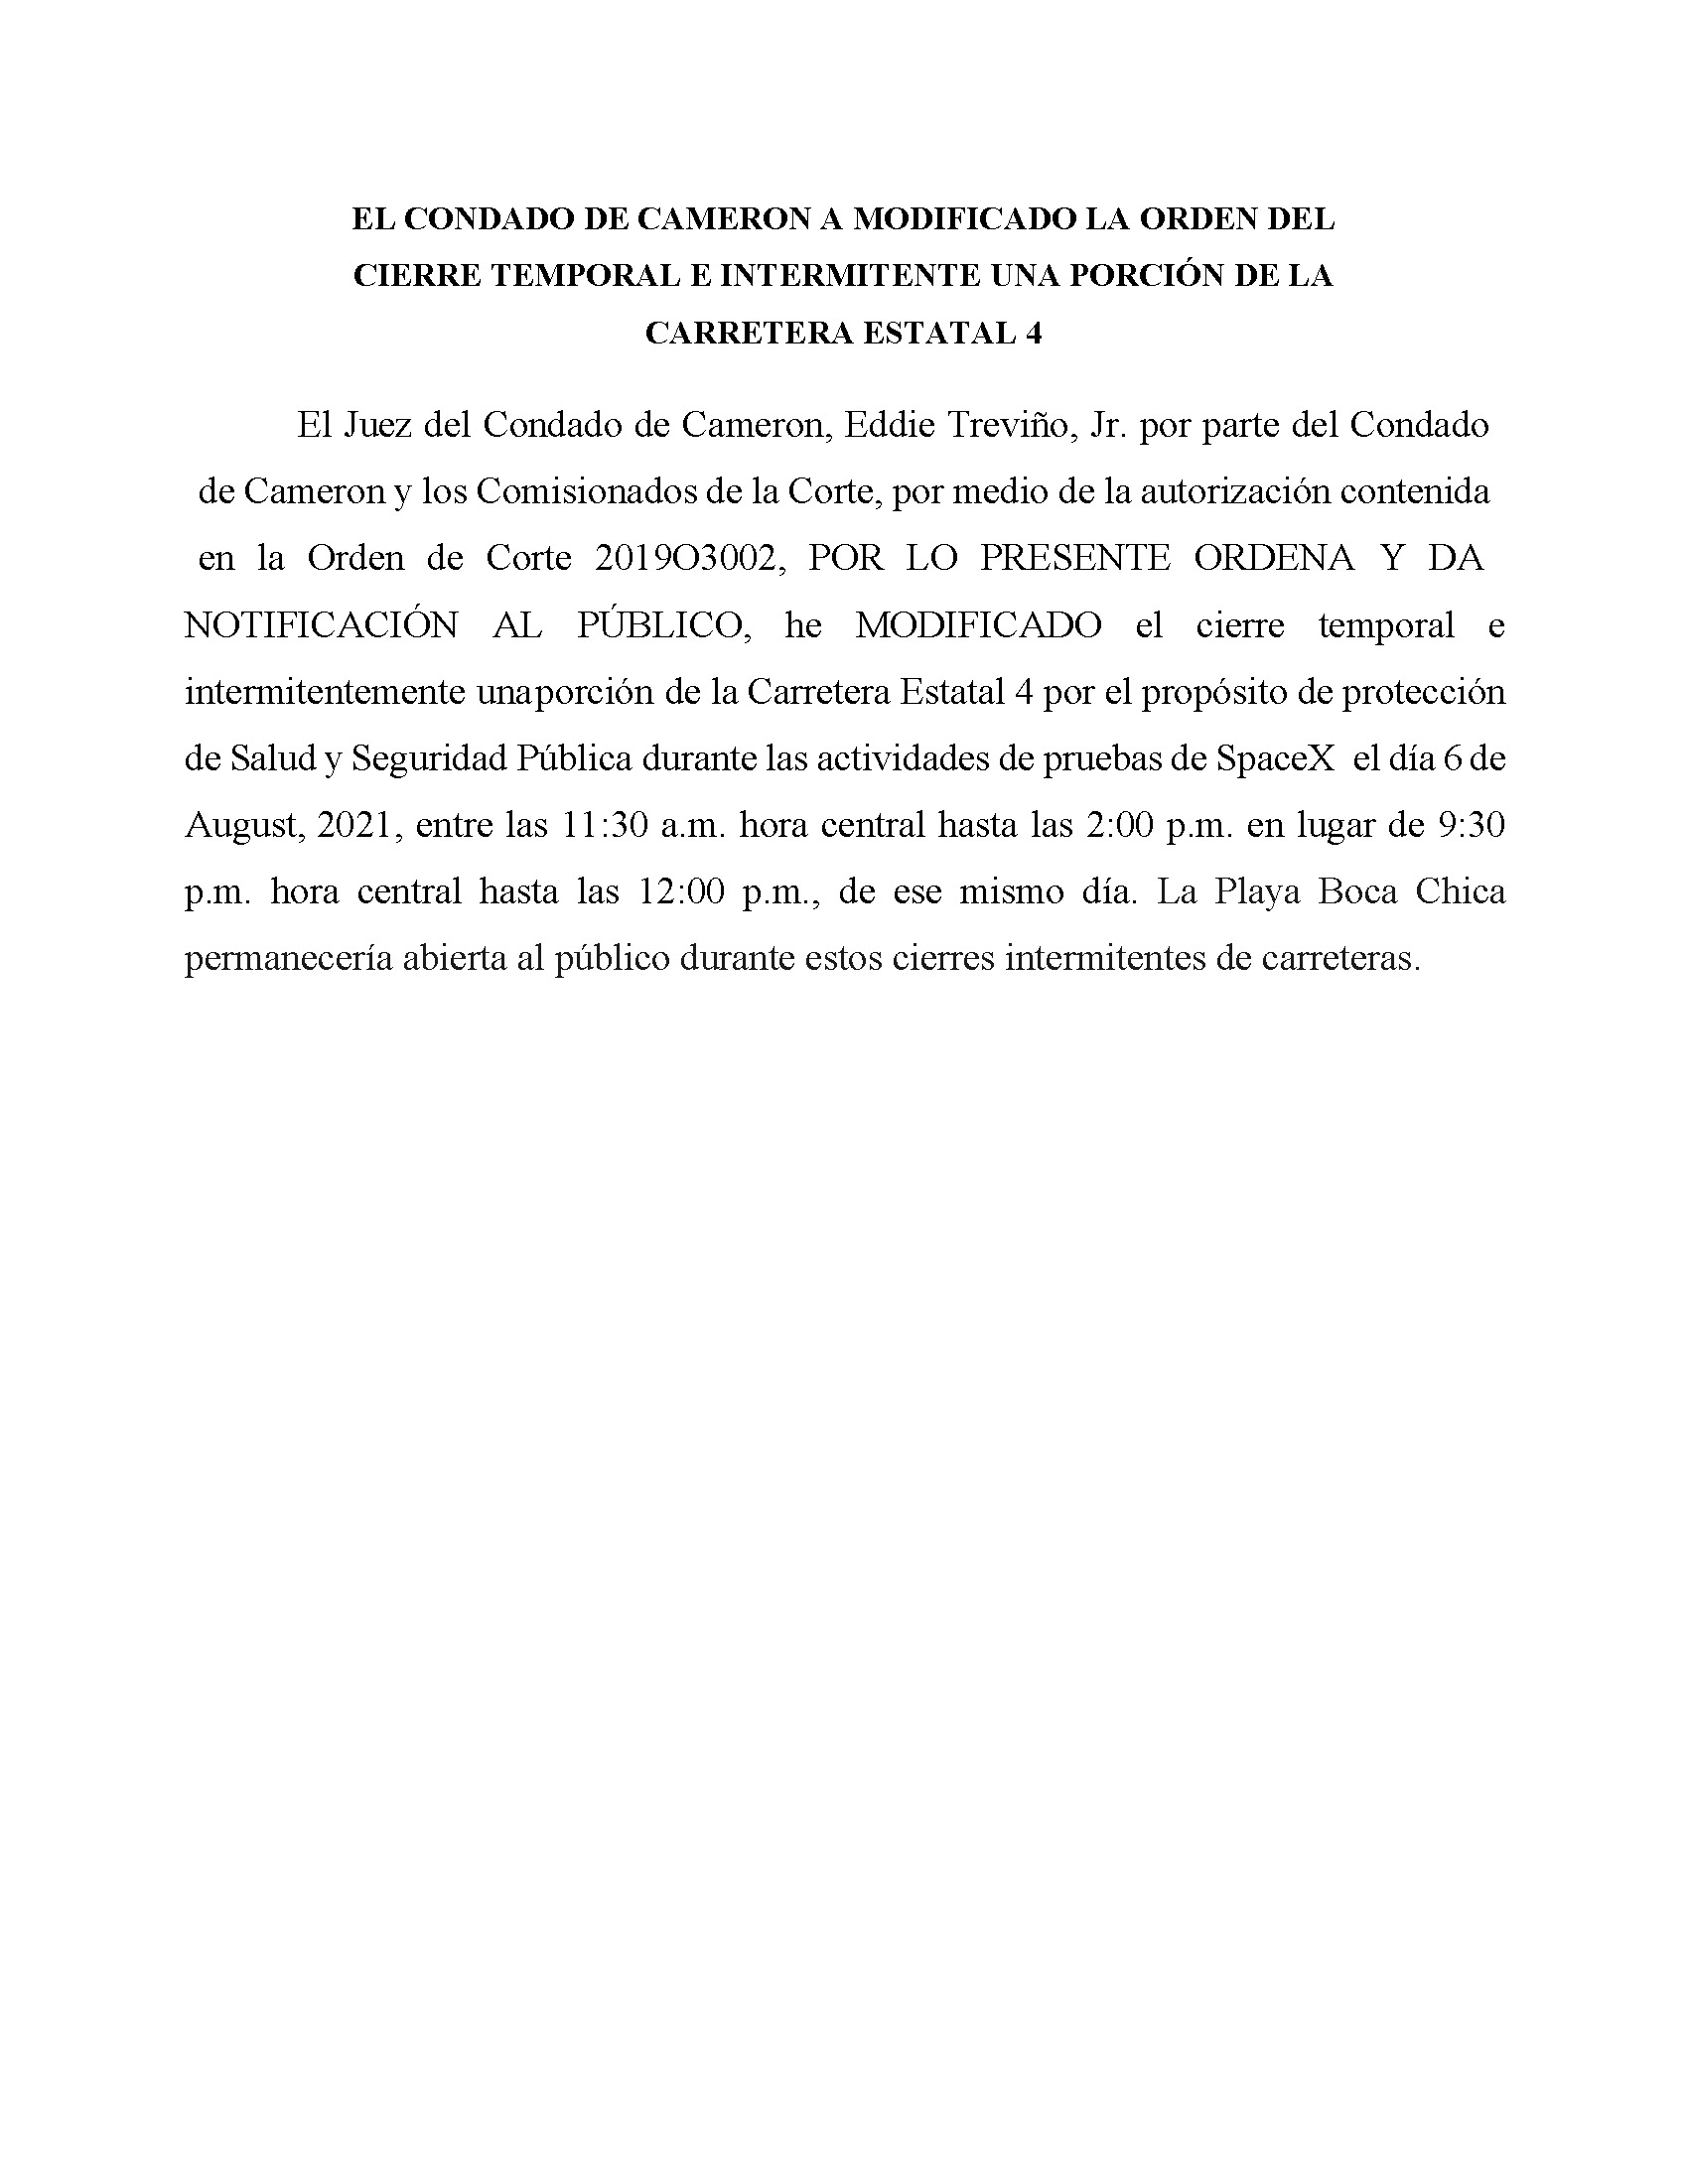 AMENDED ORDER.CLOSURE OF HIGHWAY 4.SPANISH.08.06.2021